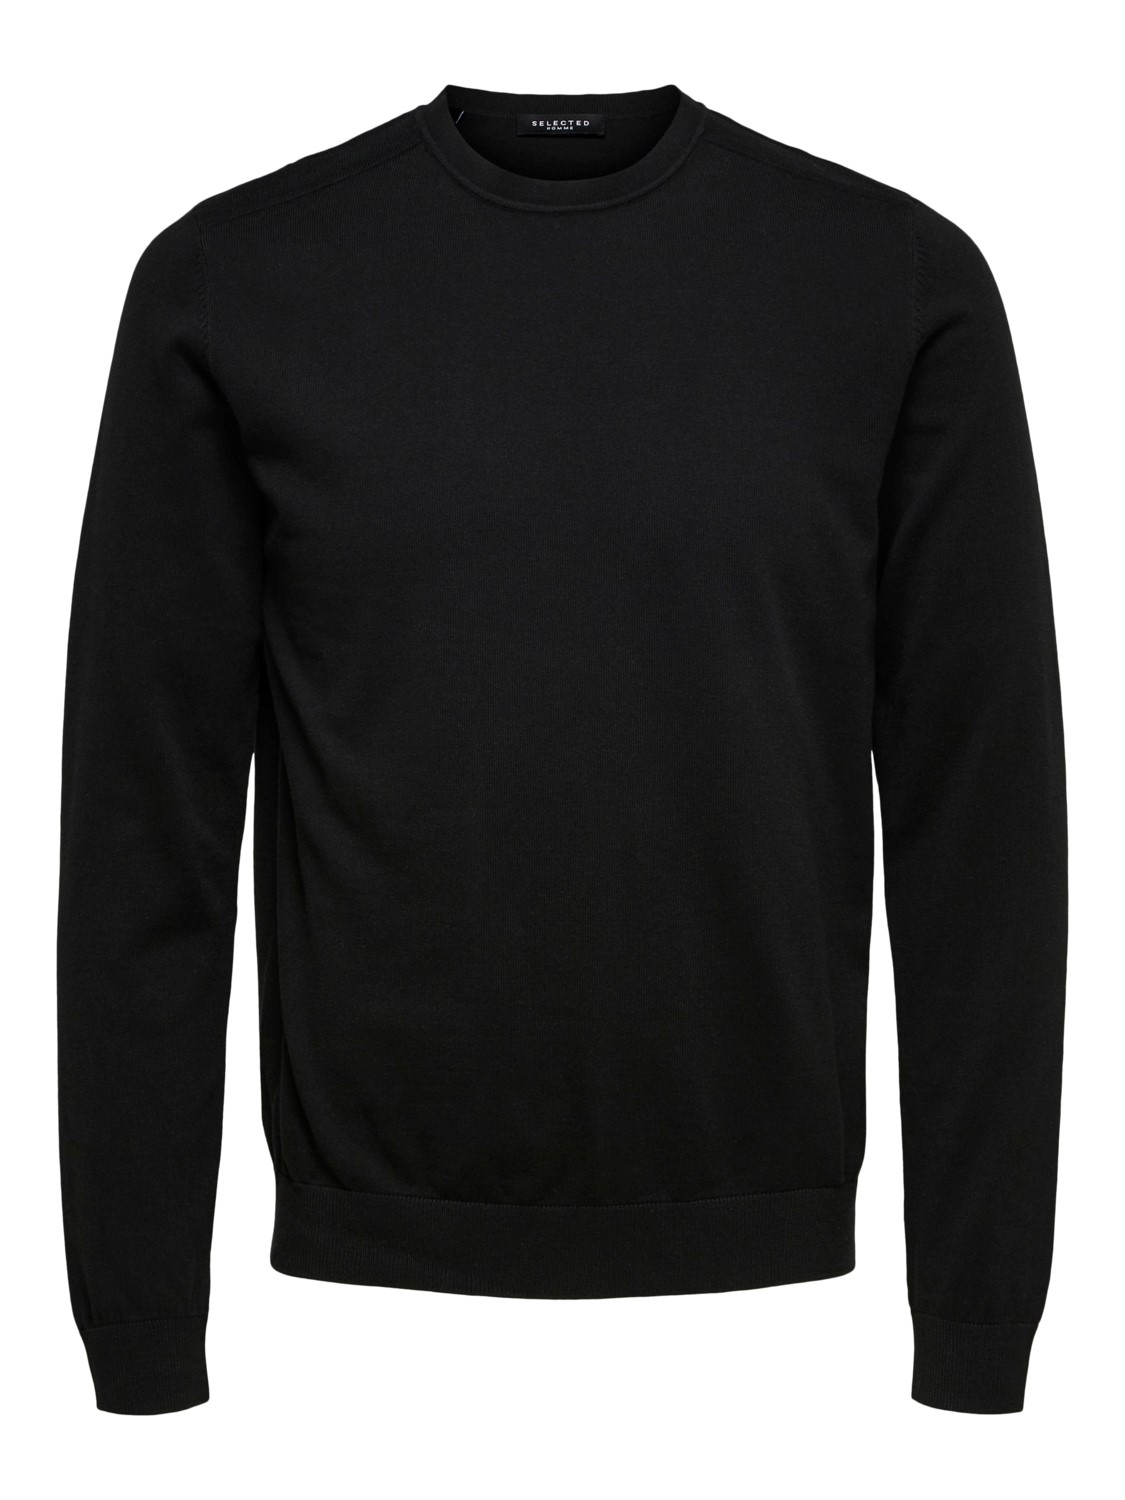 Selected - slhberg crew neck Strik Black | Gate36 Hobro